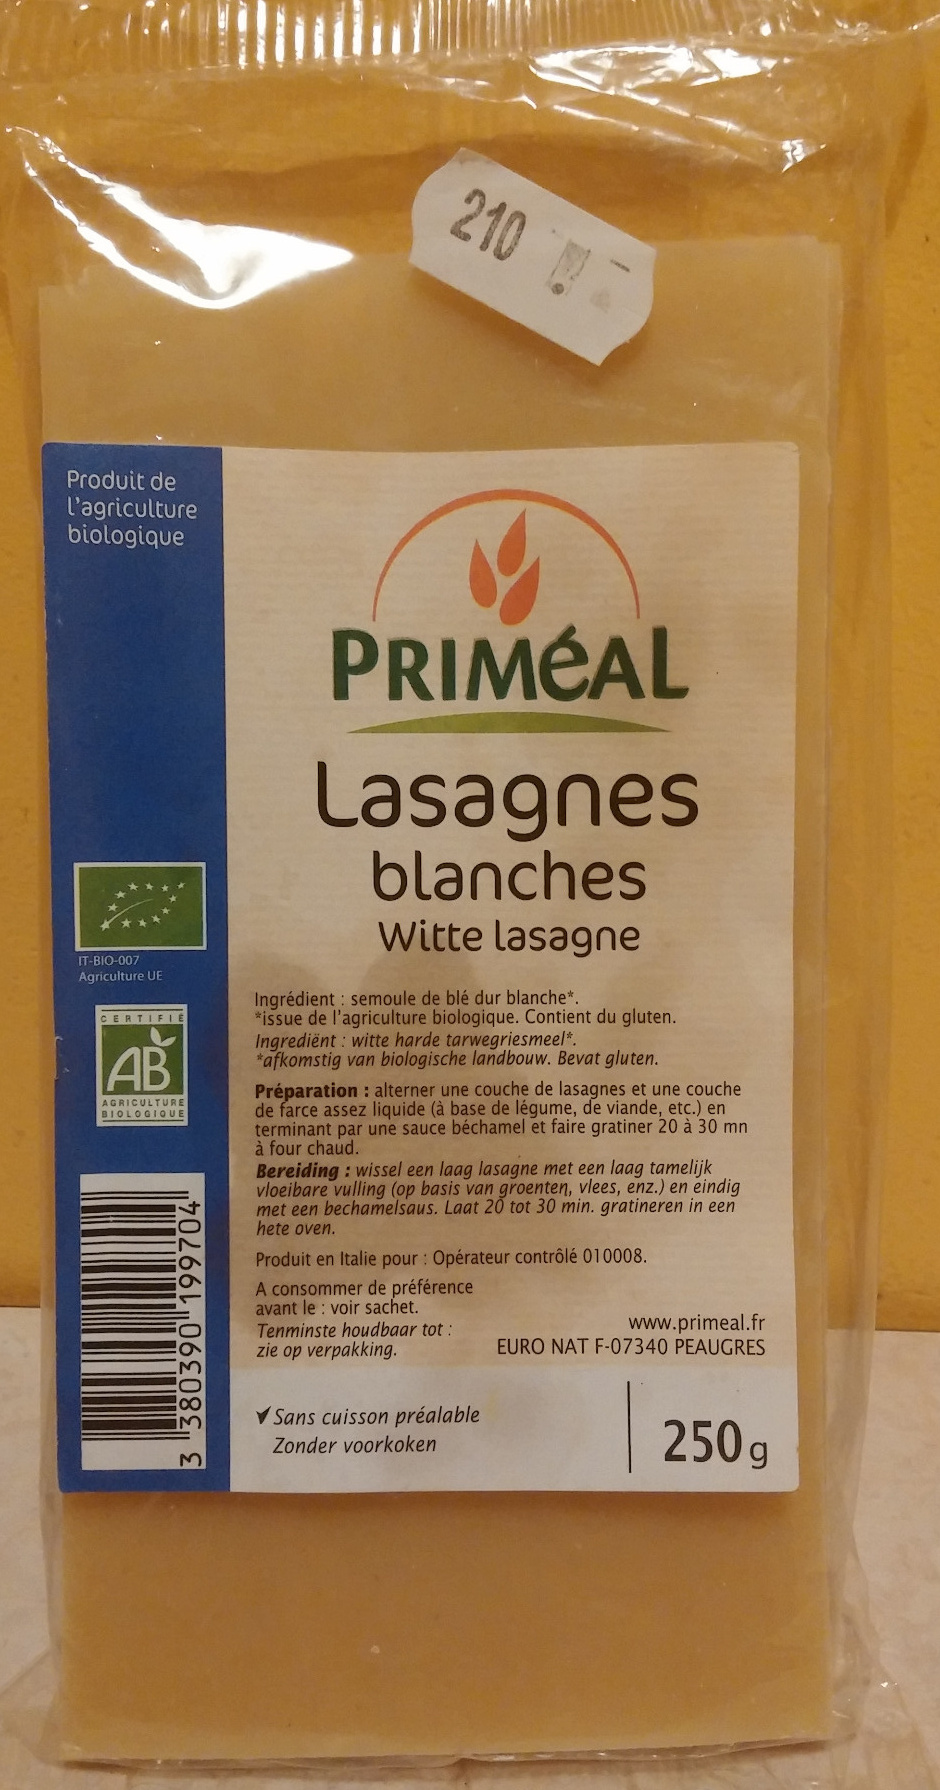 Lasagnes blanches - Product